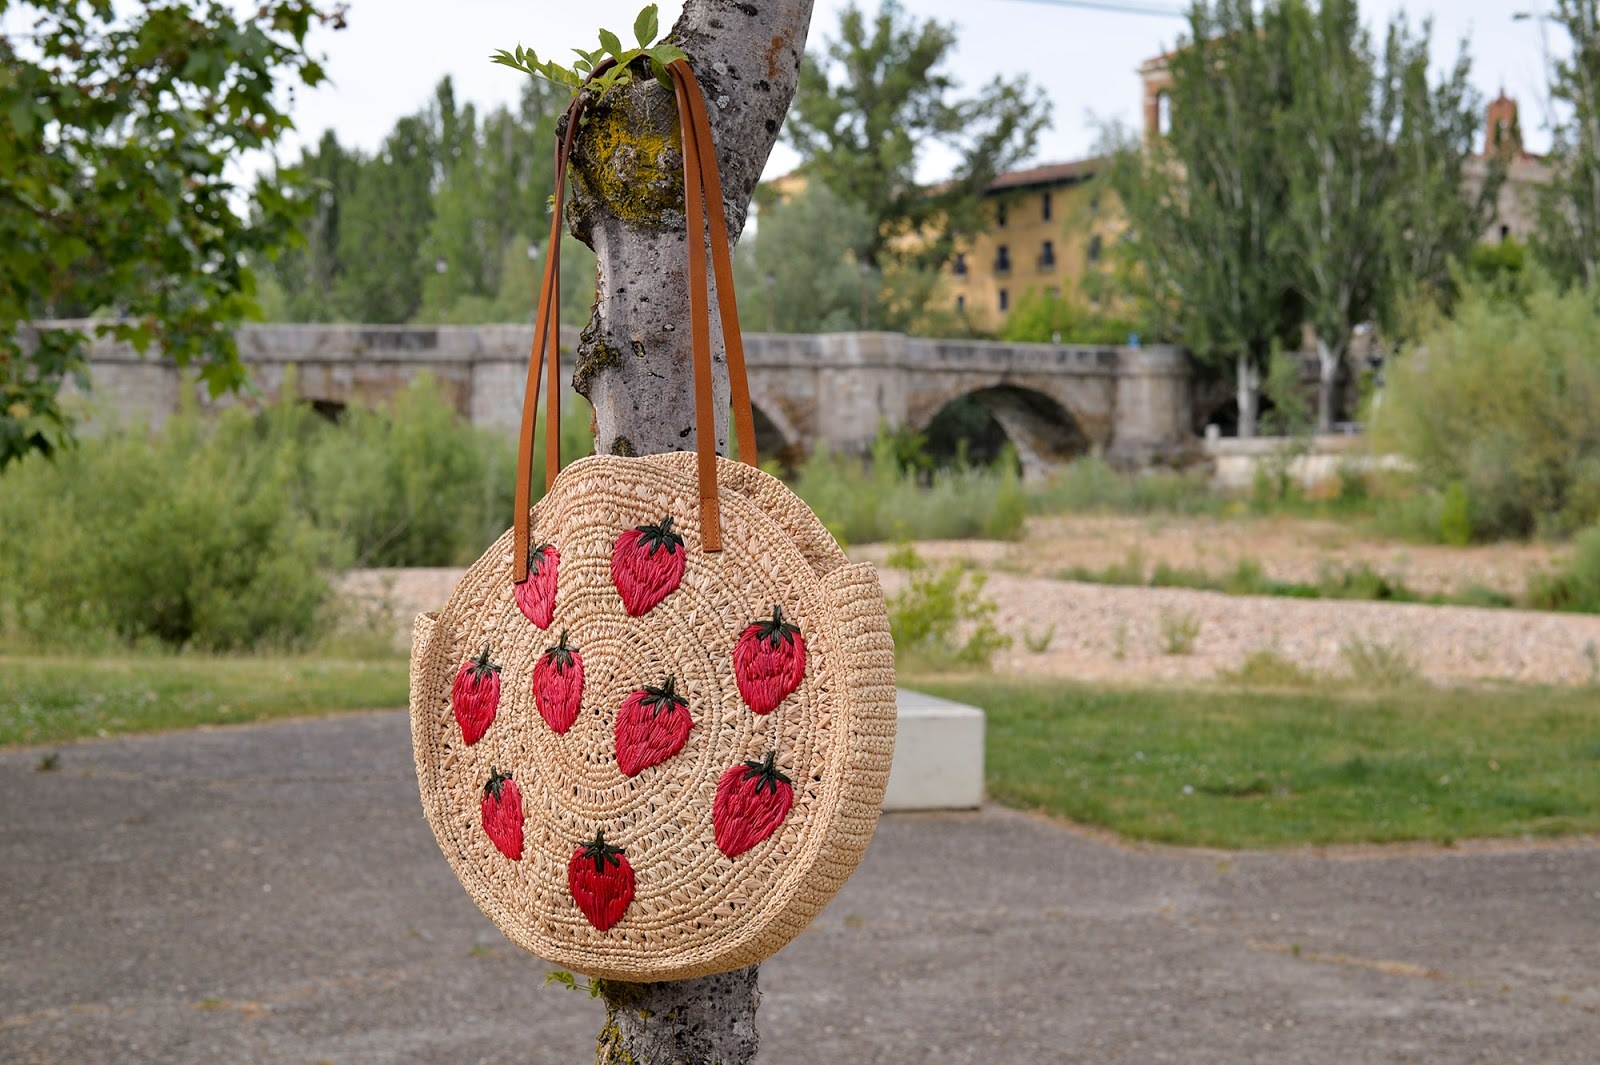 sezane basket straw raffia leather bag summer trend wicker purse tote strawberries